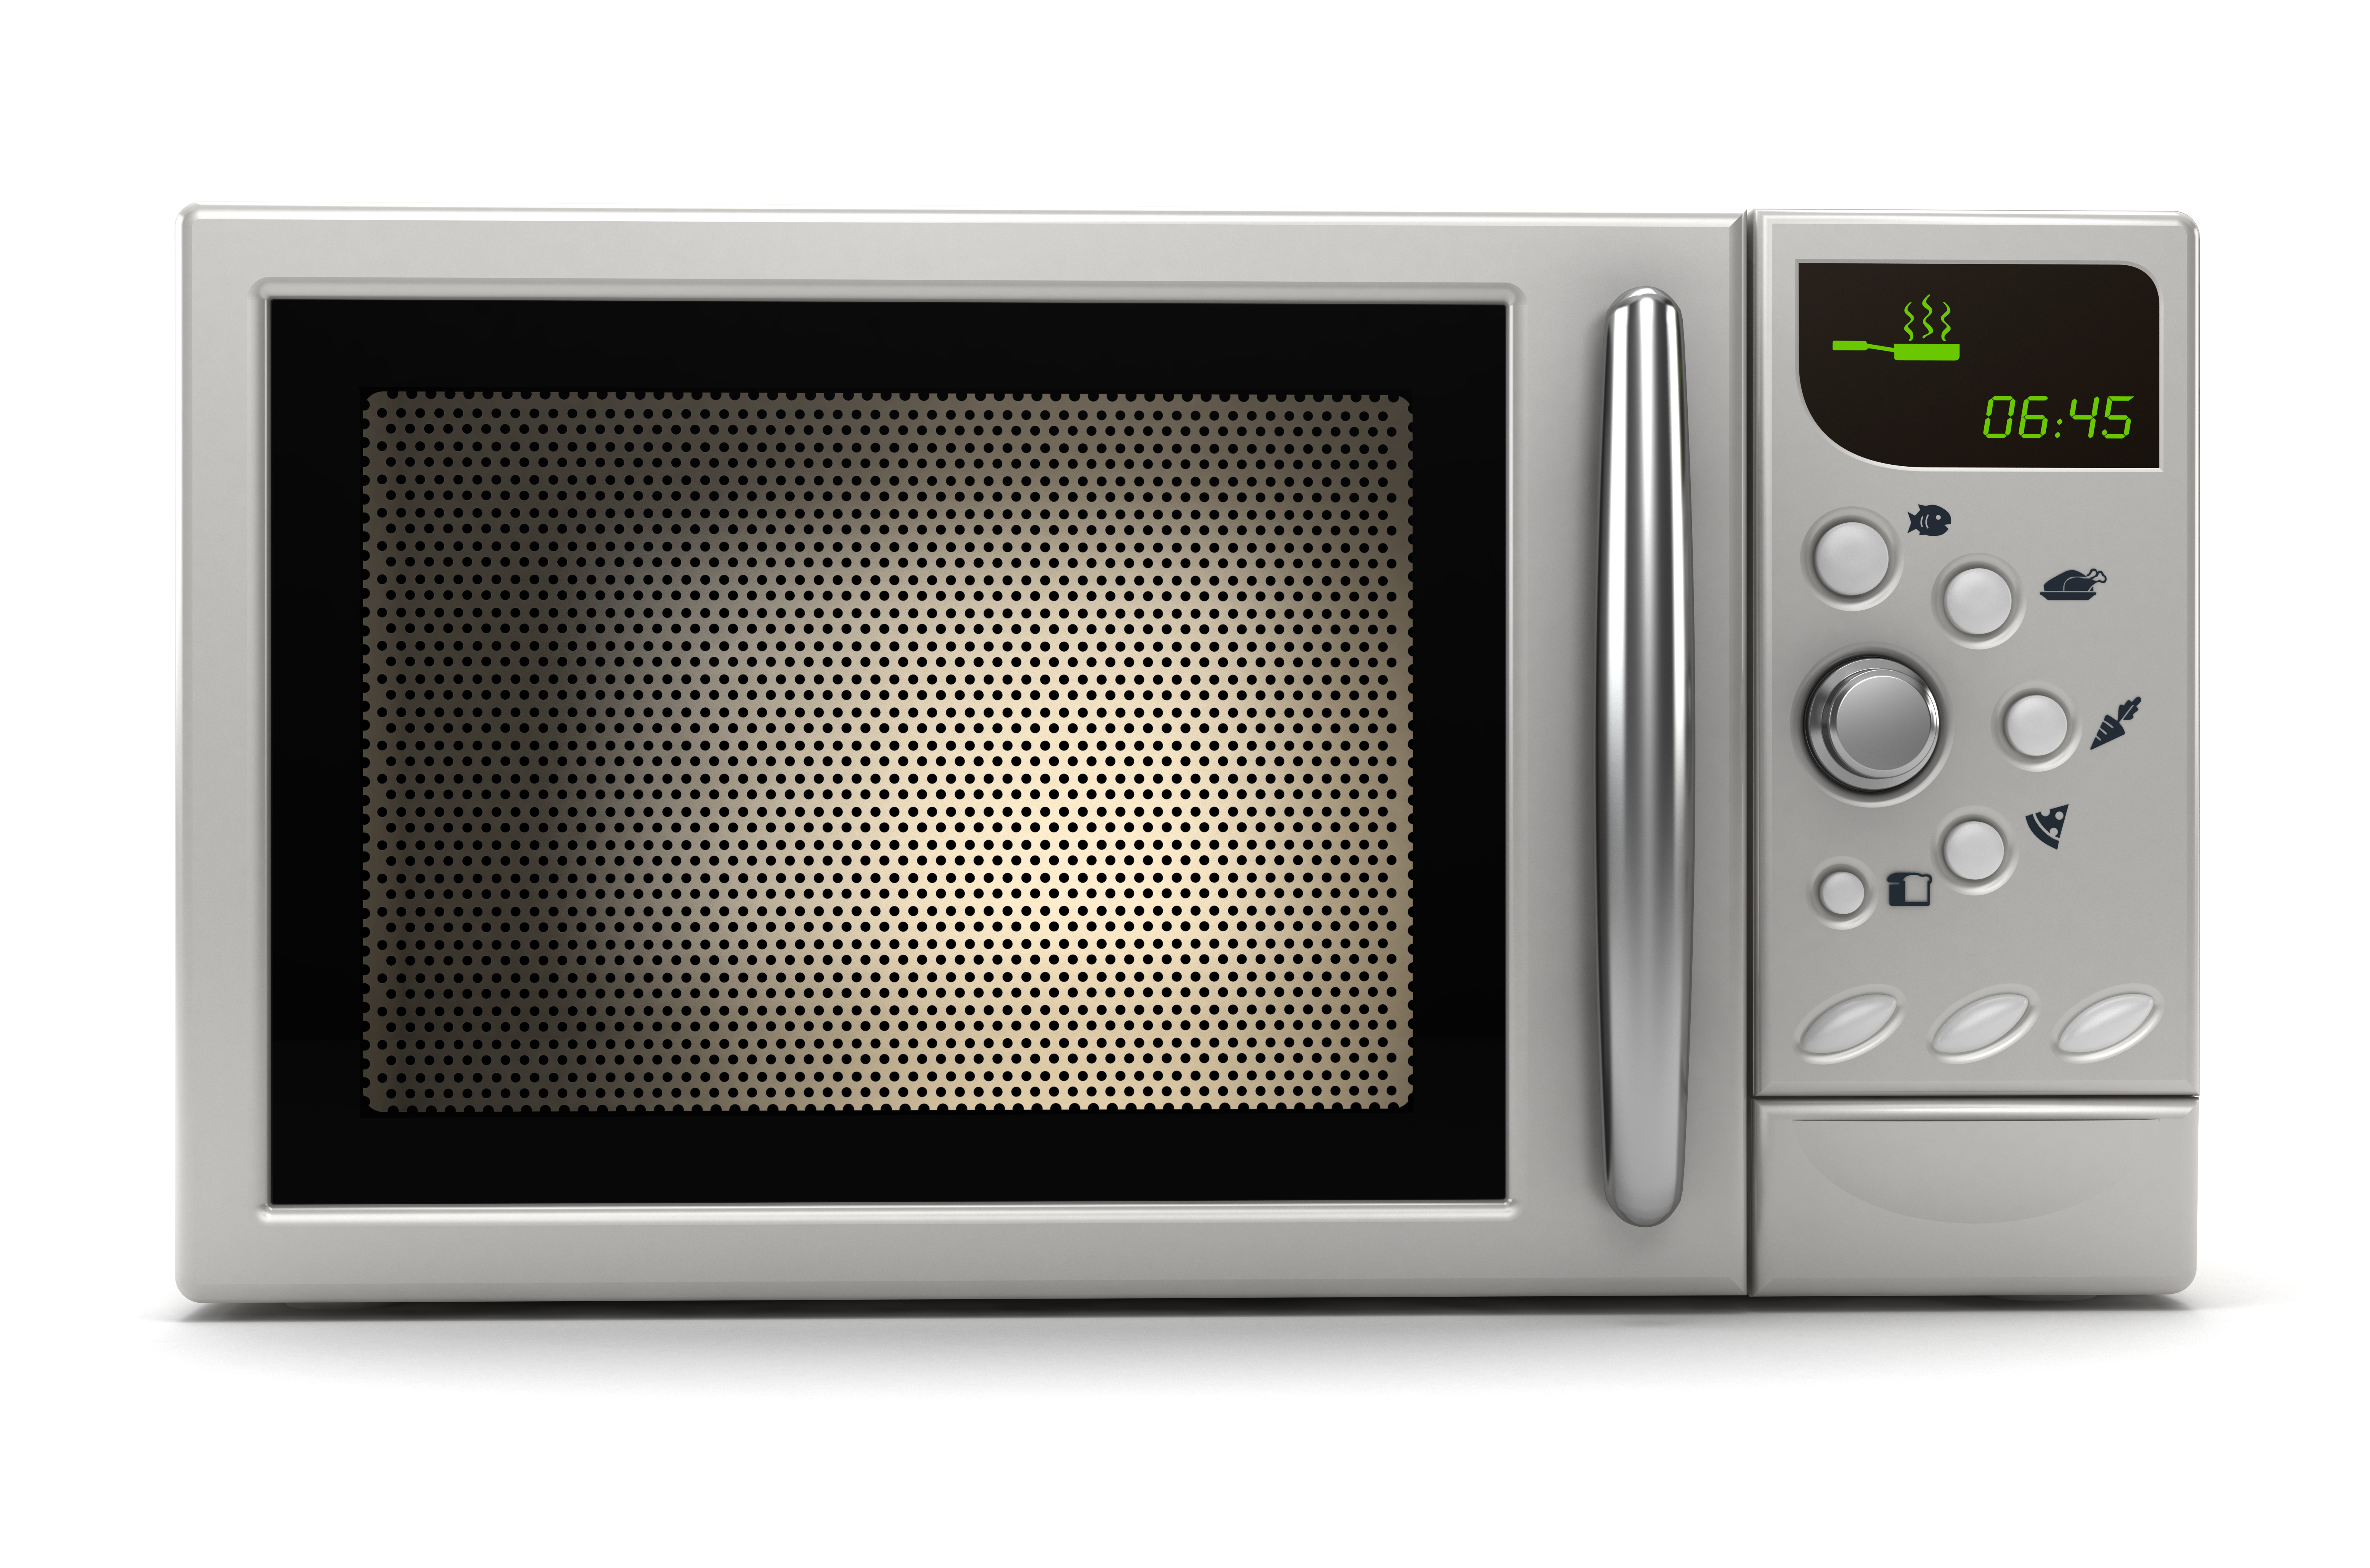 How to Troubleshoot a Microwave | Hunker